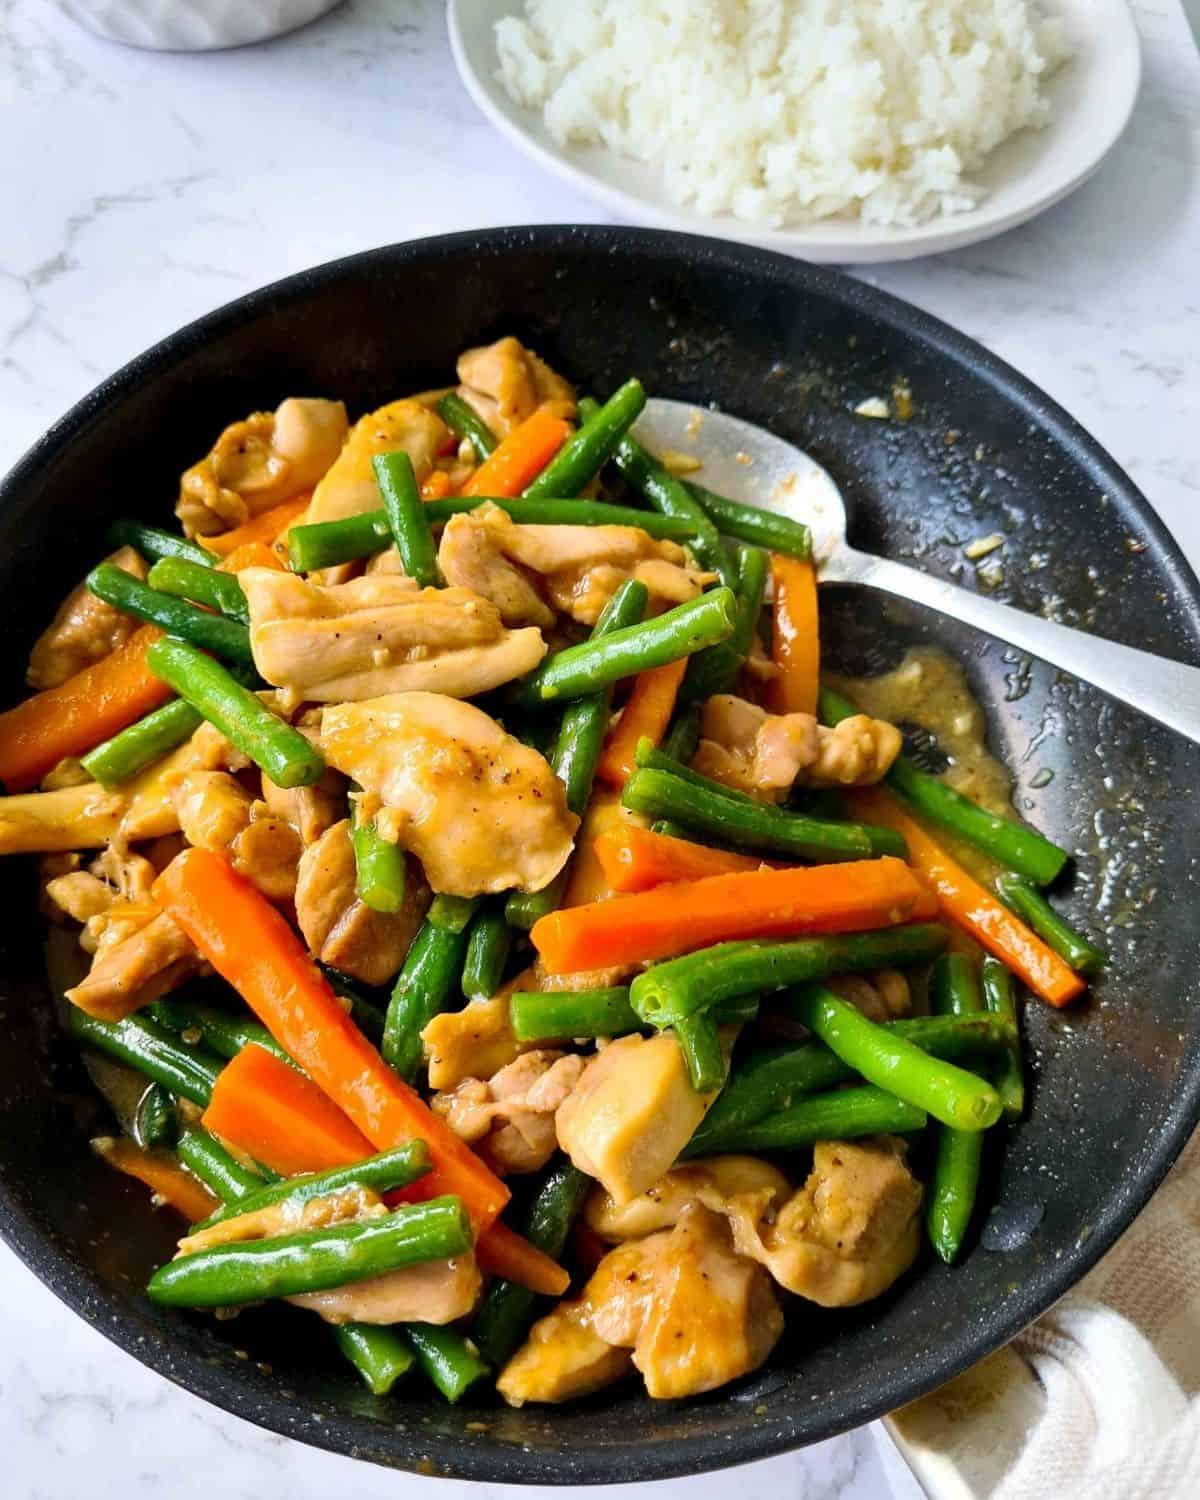 Cooked marinated chicken stir fry in a pan